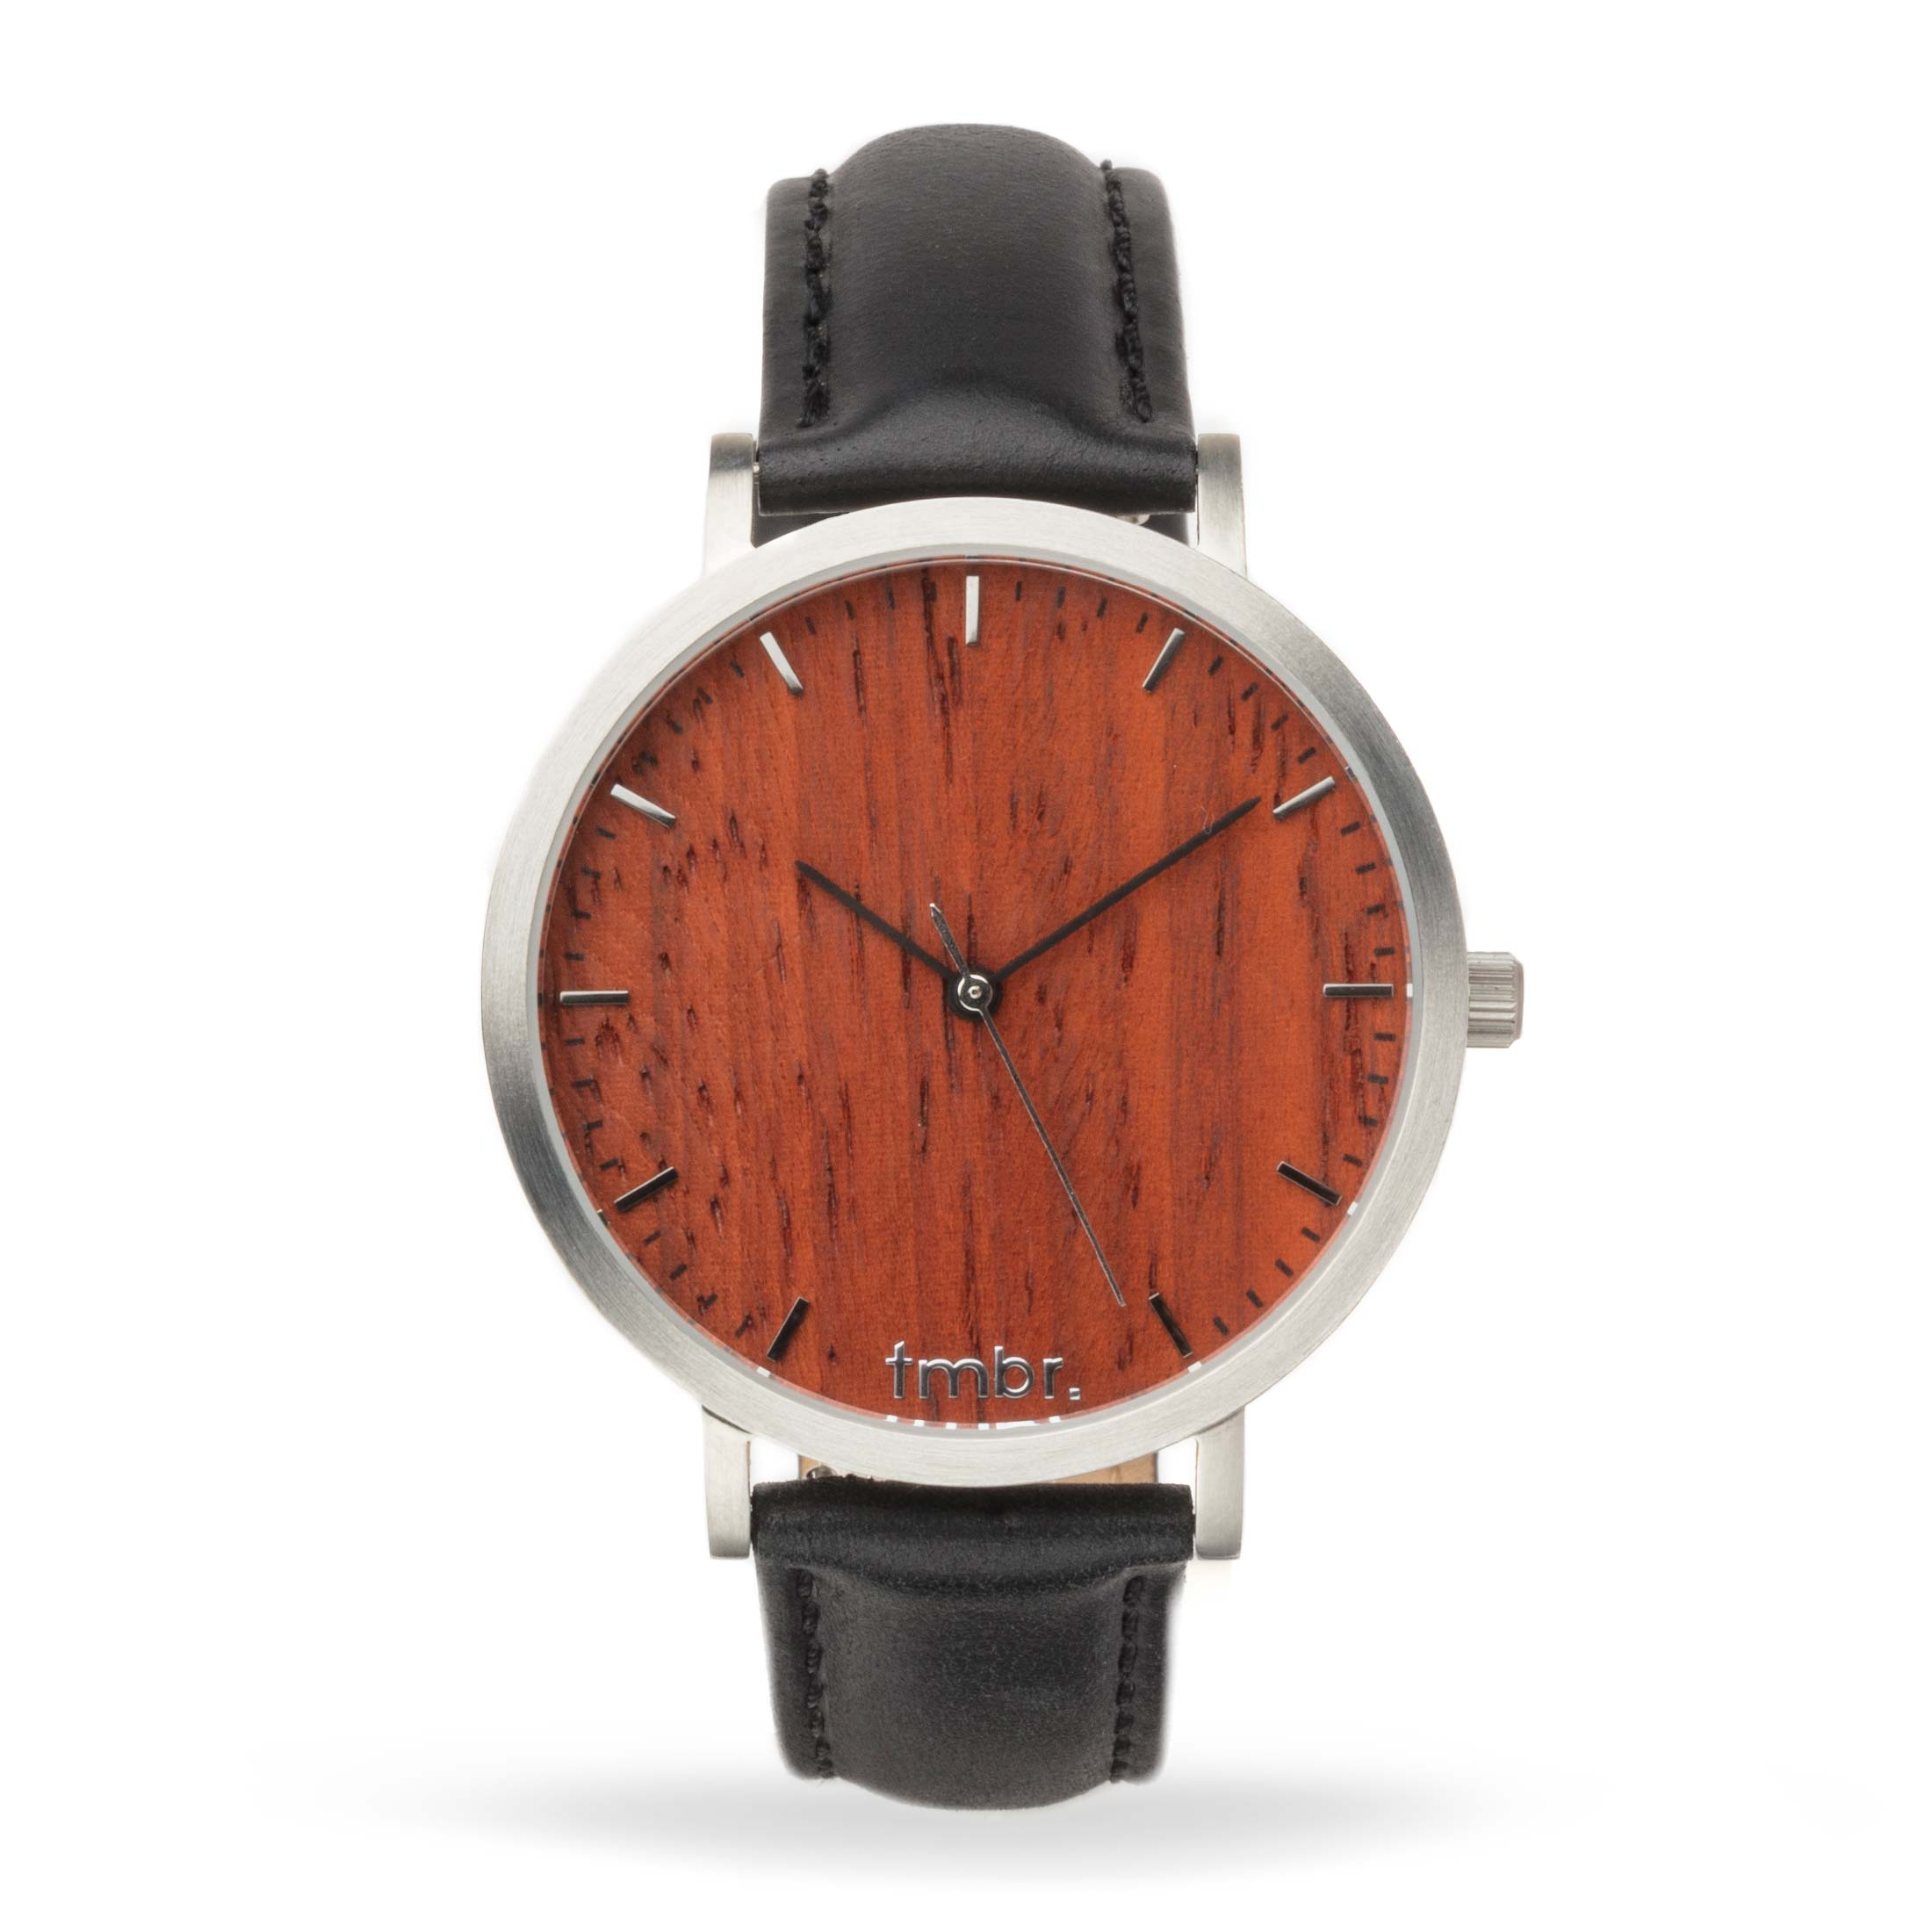 Helm Minimalist Wooden Personalized Watch Rosewood